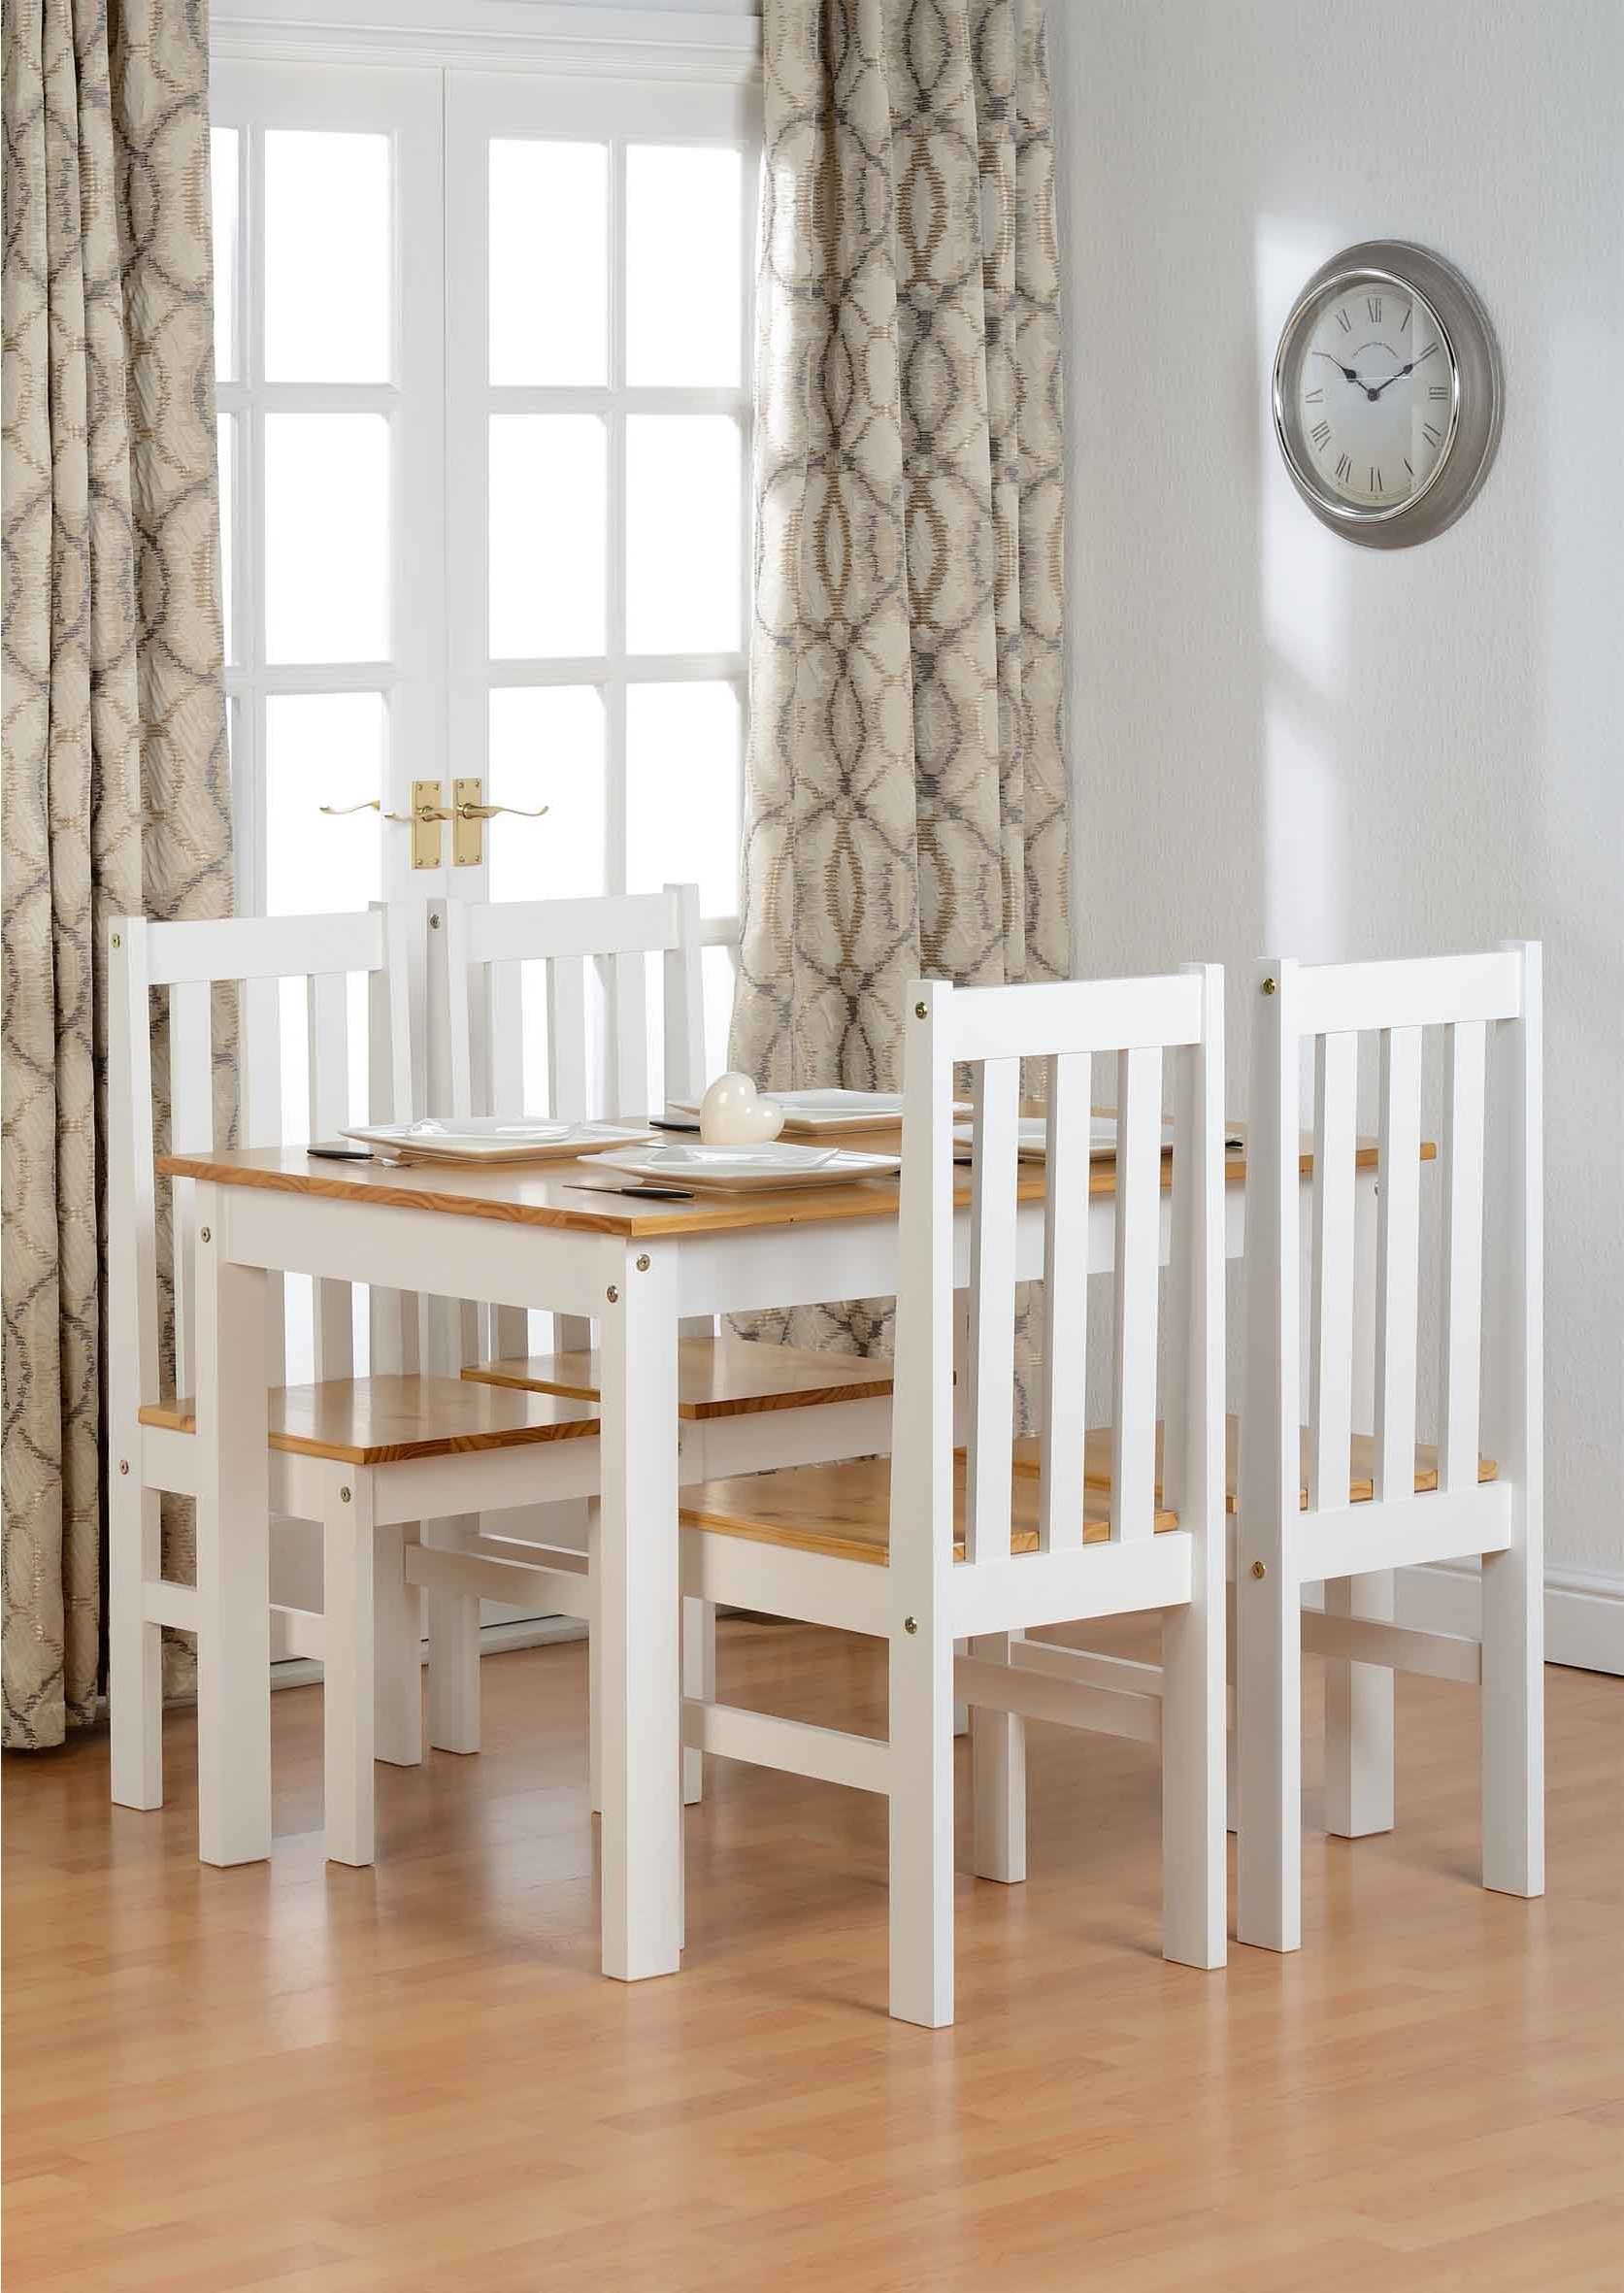 Valufurniture Ludlow Dining1 4 Ow Dining Room Tables